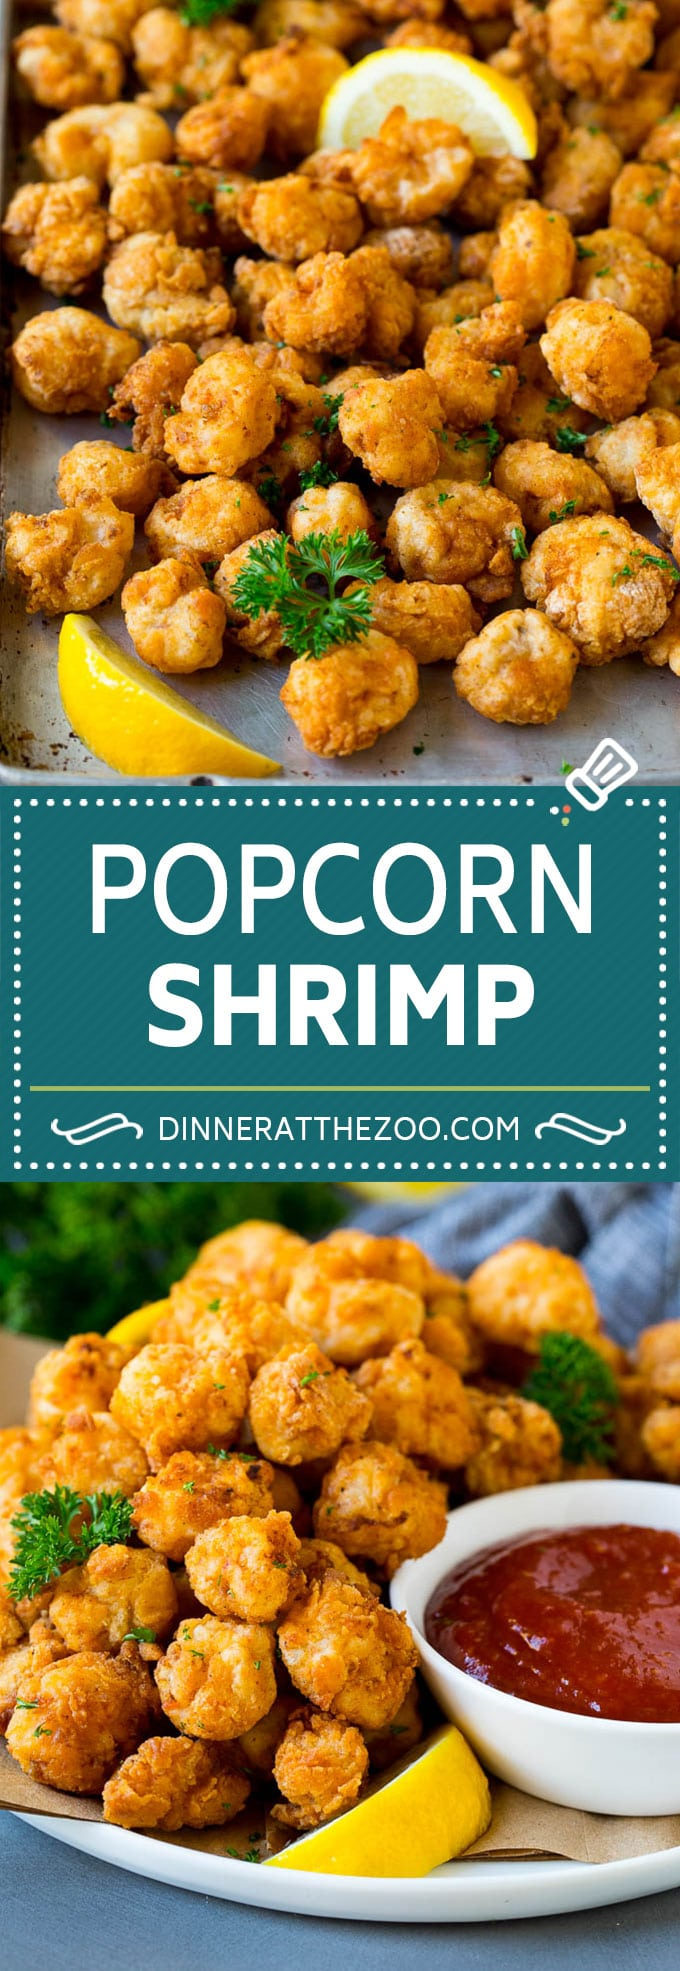 Popcorn Shrimp Recipe | Fried Shrimp #shrimp #appetizer #seafood #dinner #dinneratthezoo